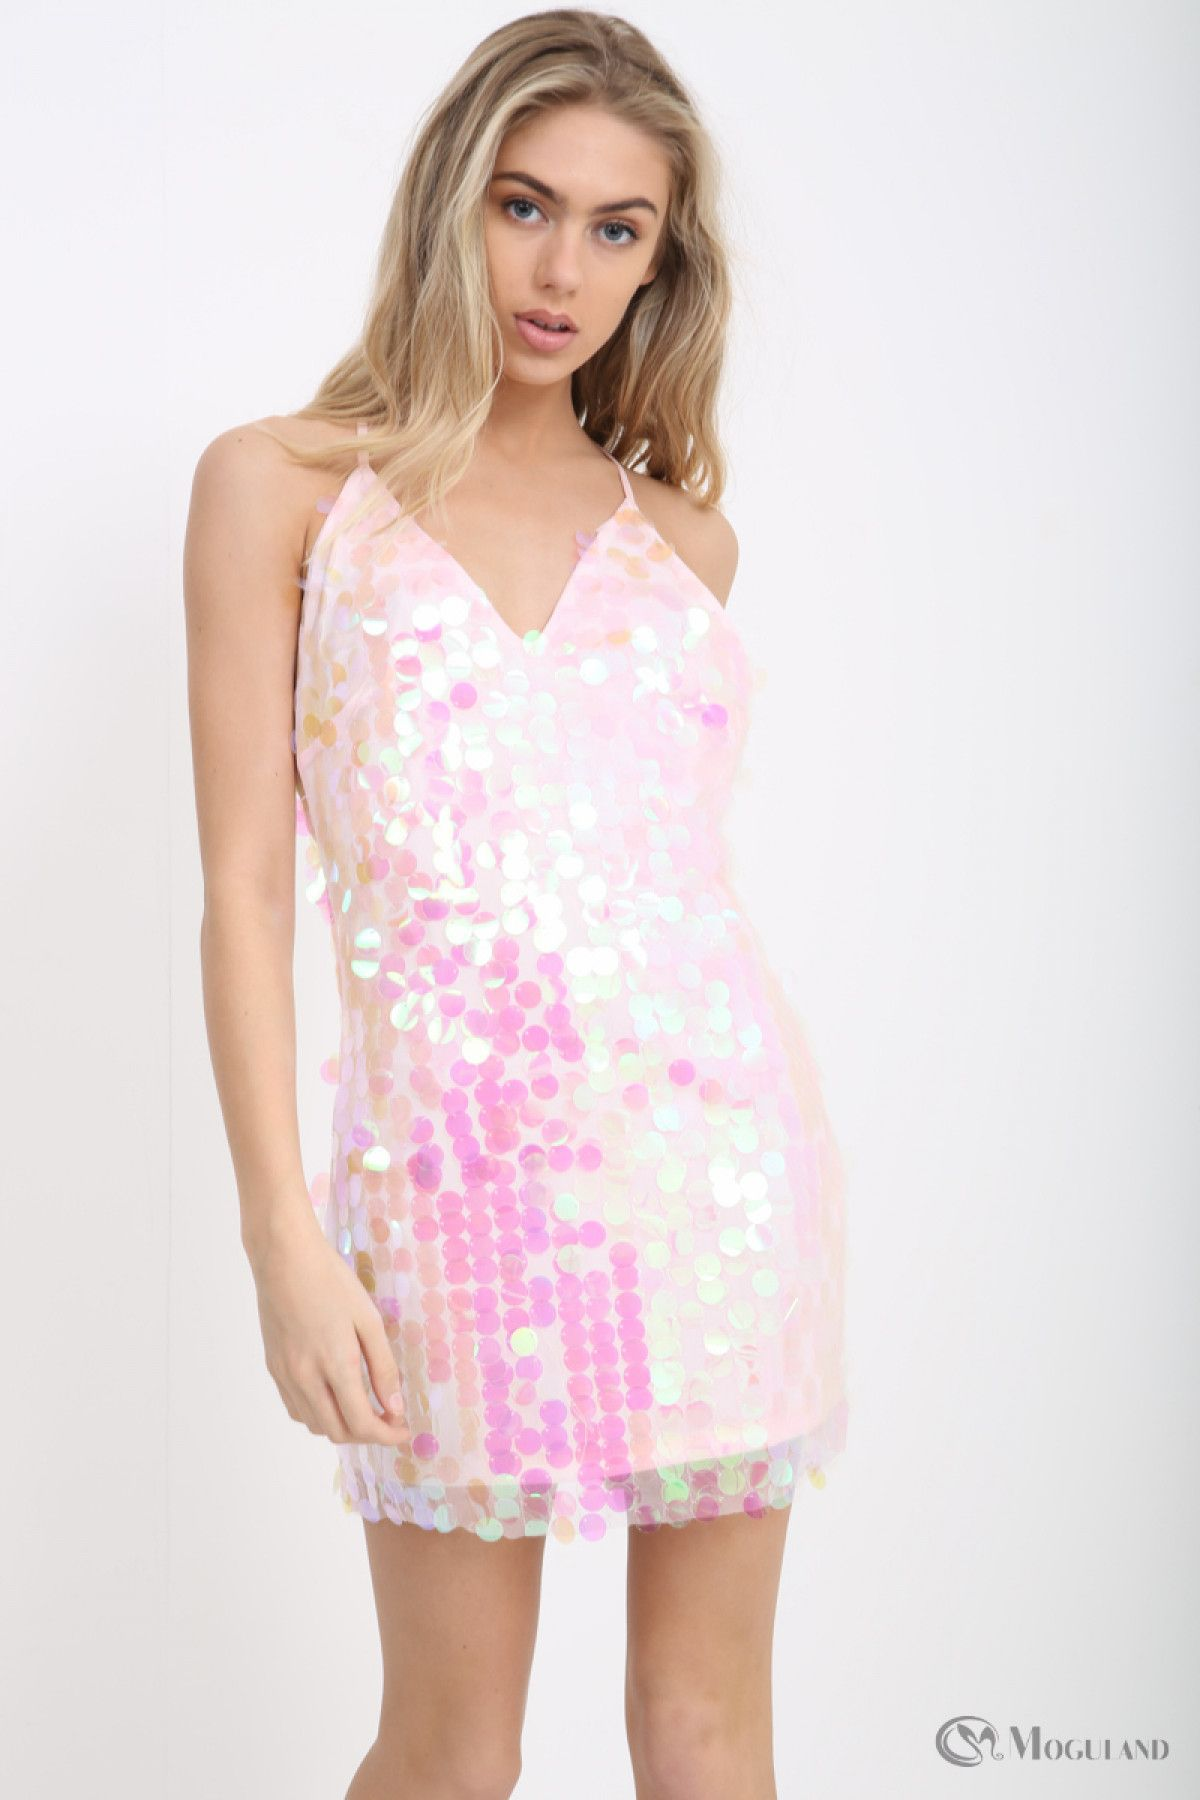 f5ebabb739 Ladies pink iridescent sequin strappy mini dress wholesale - Women s  Wholesale Clothing Supplier